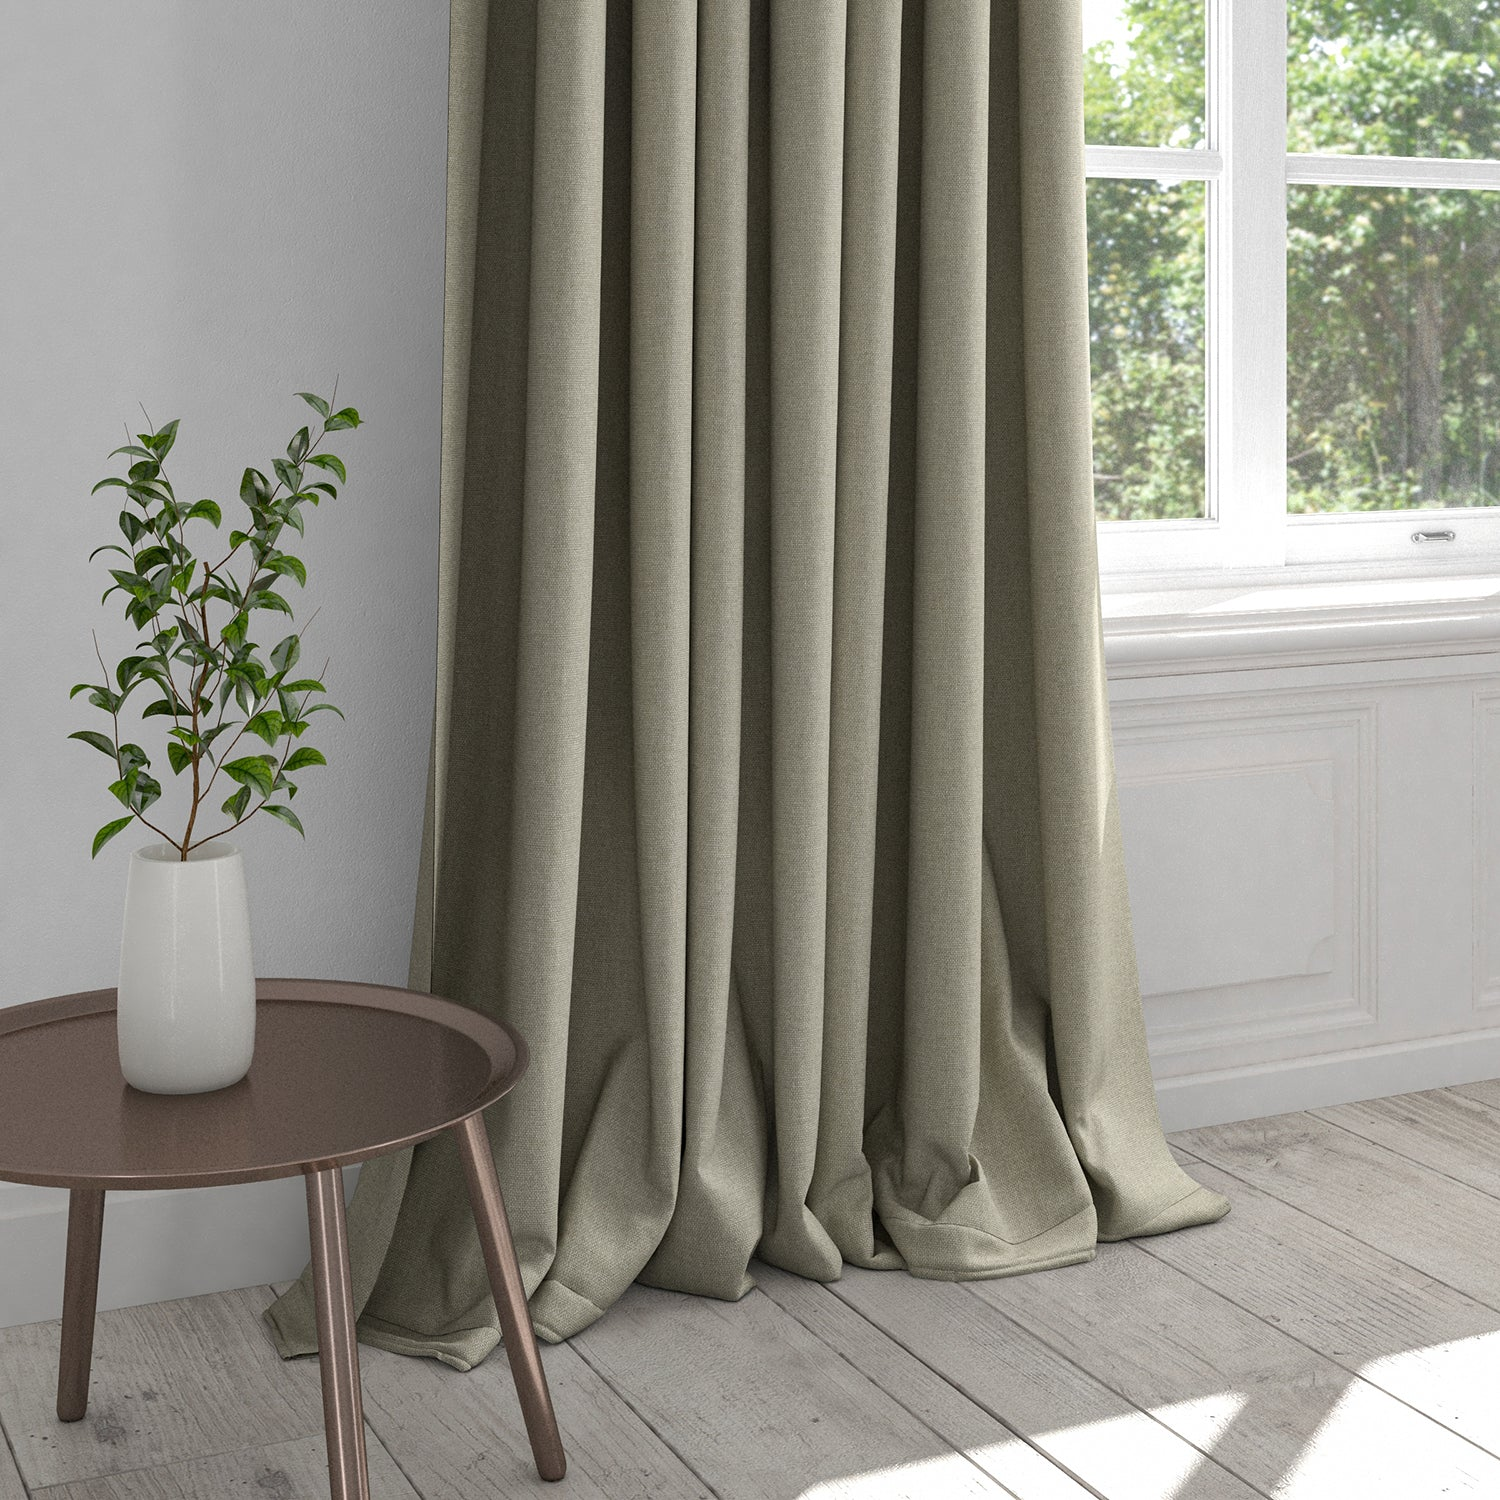 Curtain in a stone coloured washable cotton fabric